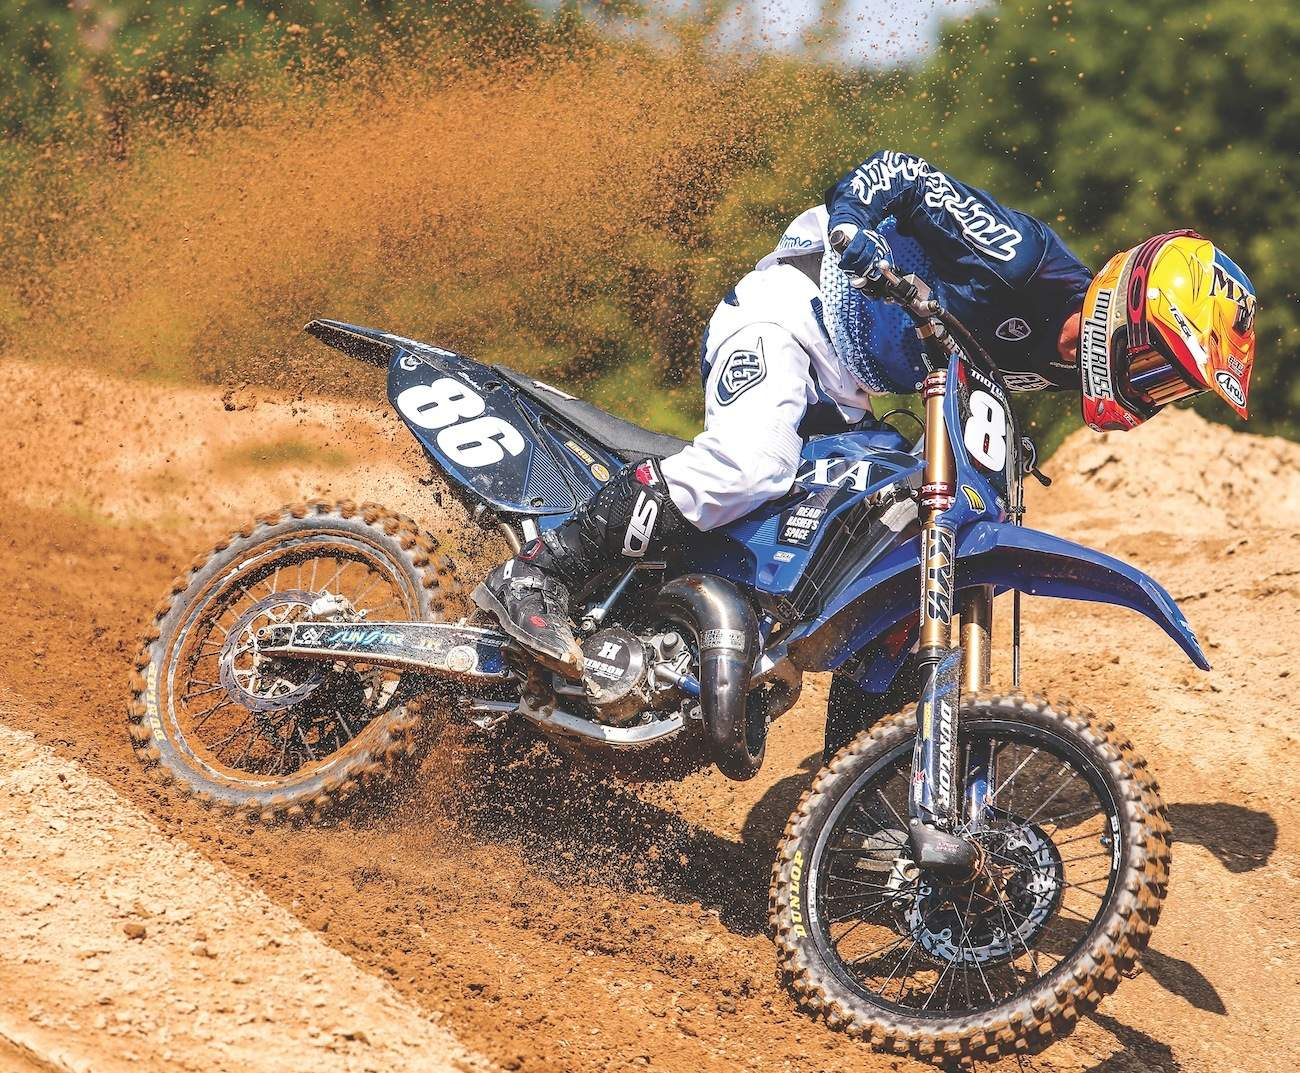 2005 YZ125 MAKEOVER: ALL IT TOOK WAS 16 GRAND | Motocross Action